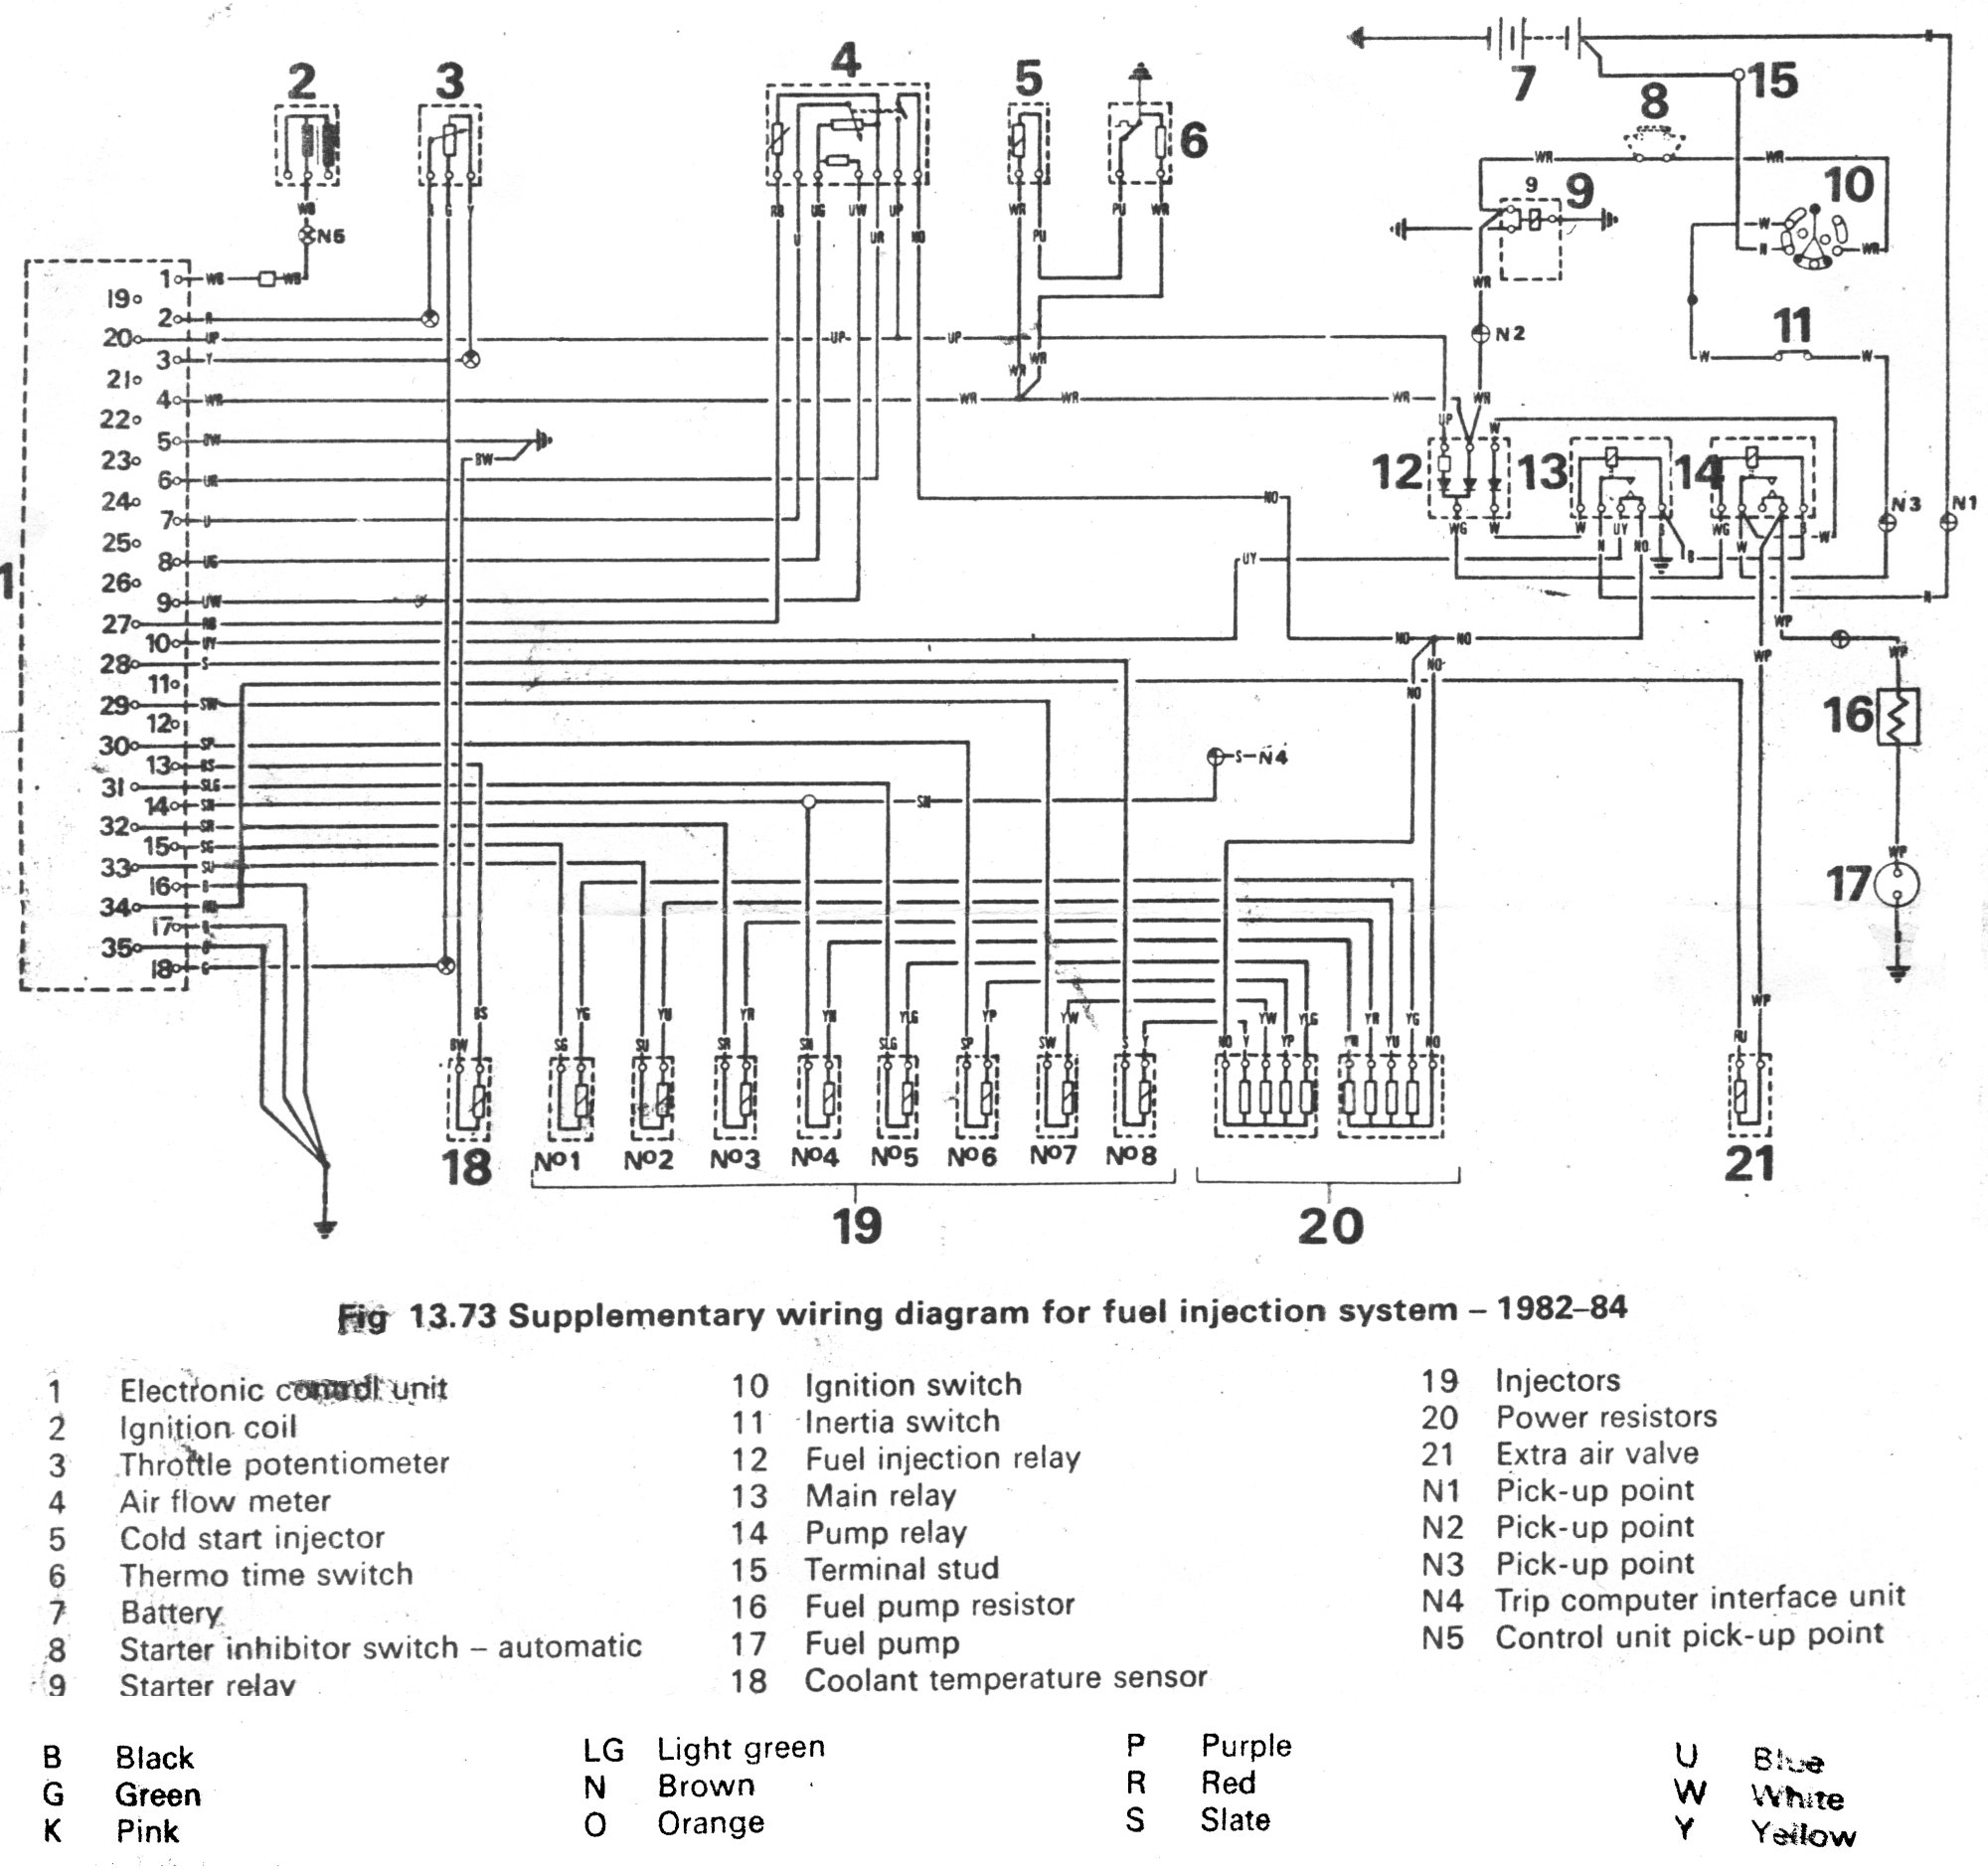 Land Rover Discovery Wiring Diagram : Land rover discovery fuse box diagram free engine